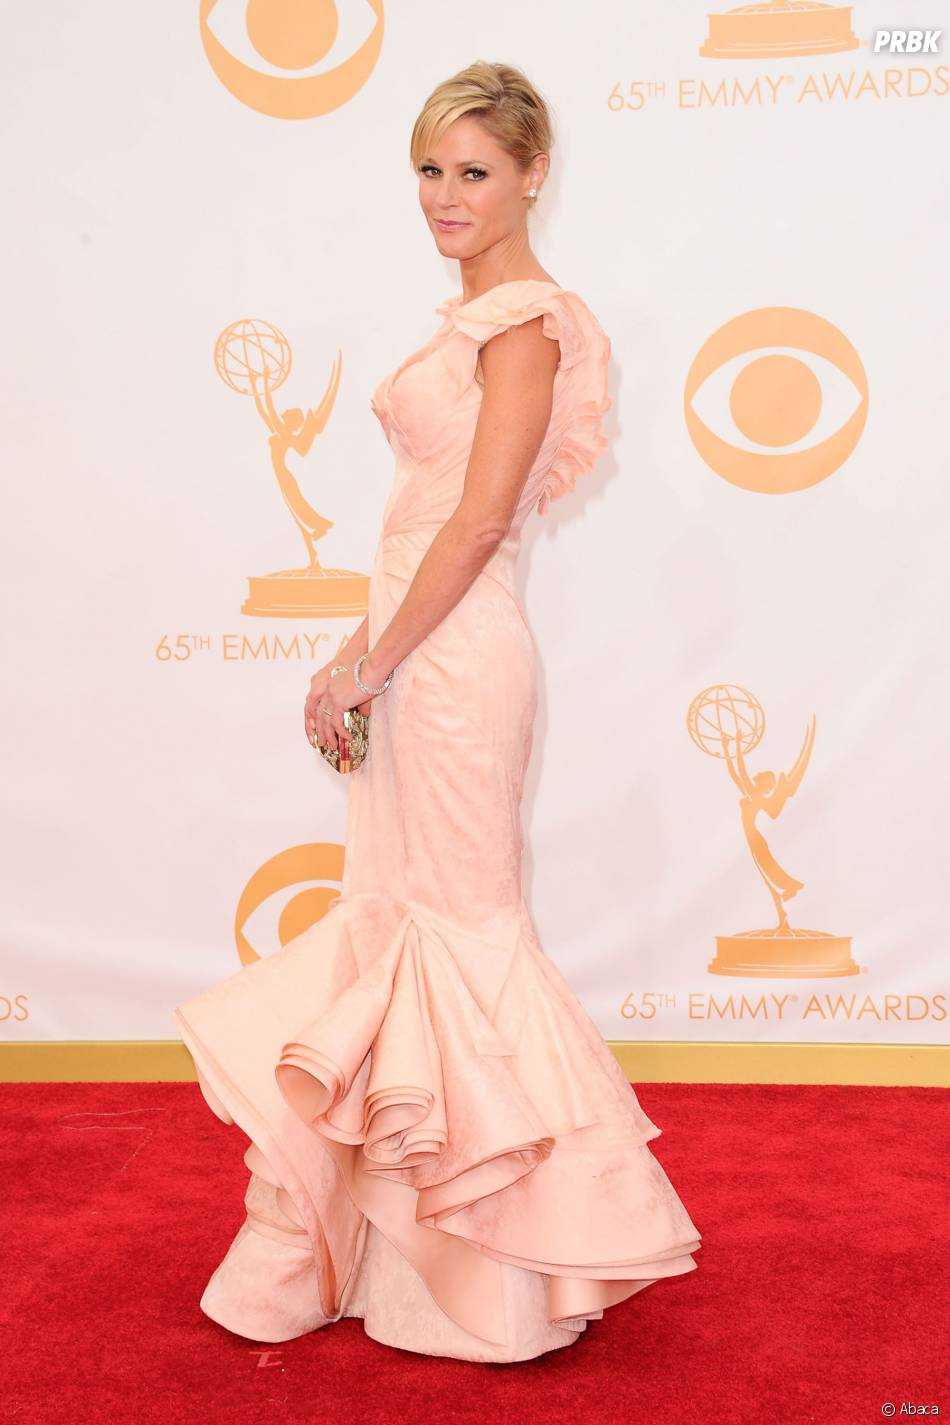 Julie Bowen aux Emmy Awards 2013 le 22 septembre 2013 à Los Angeles